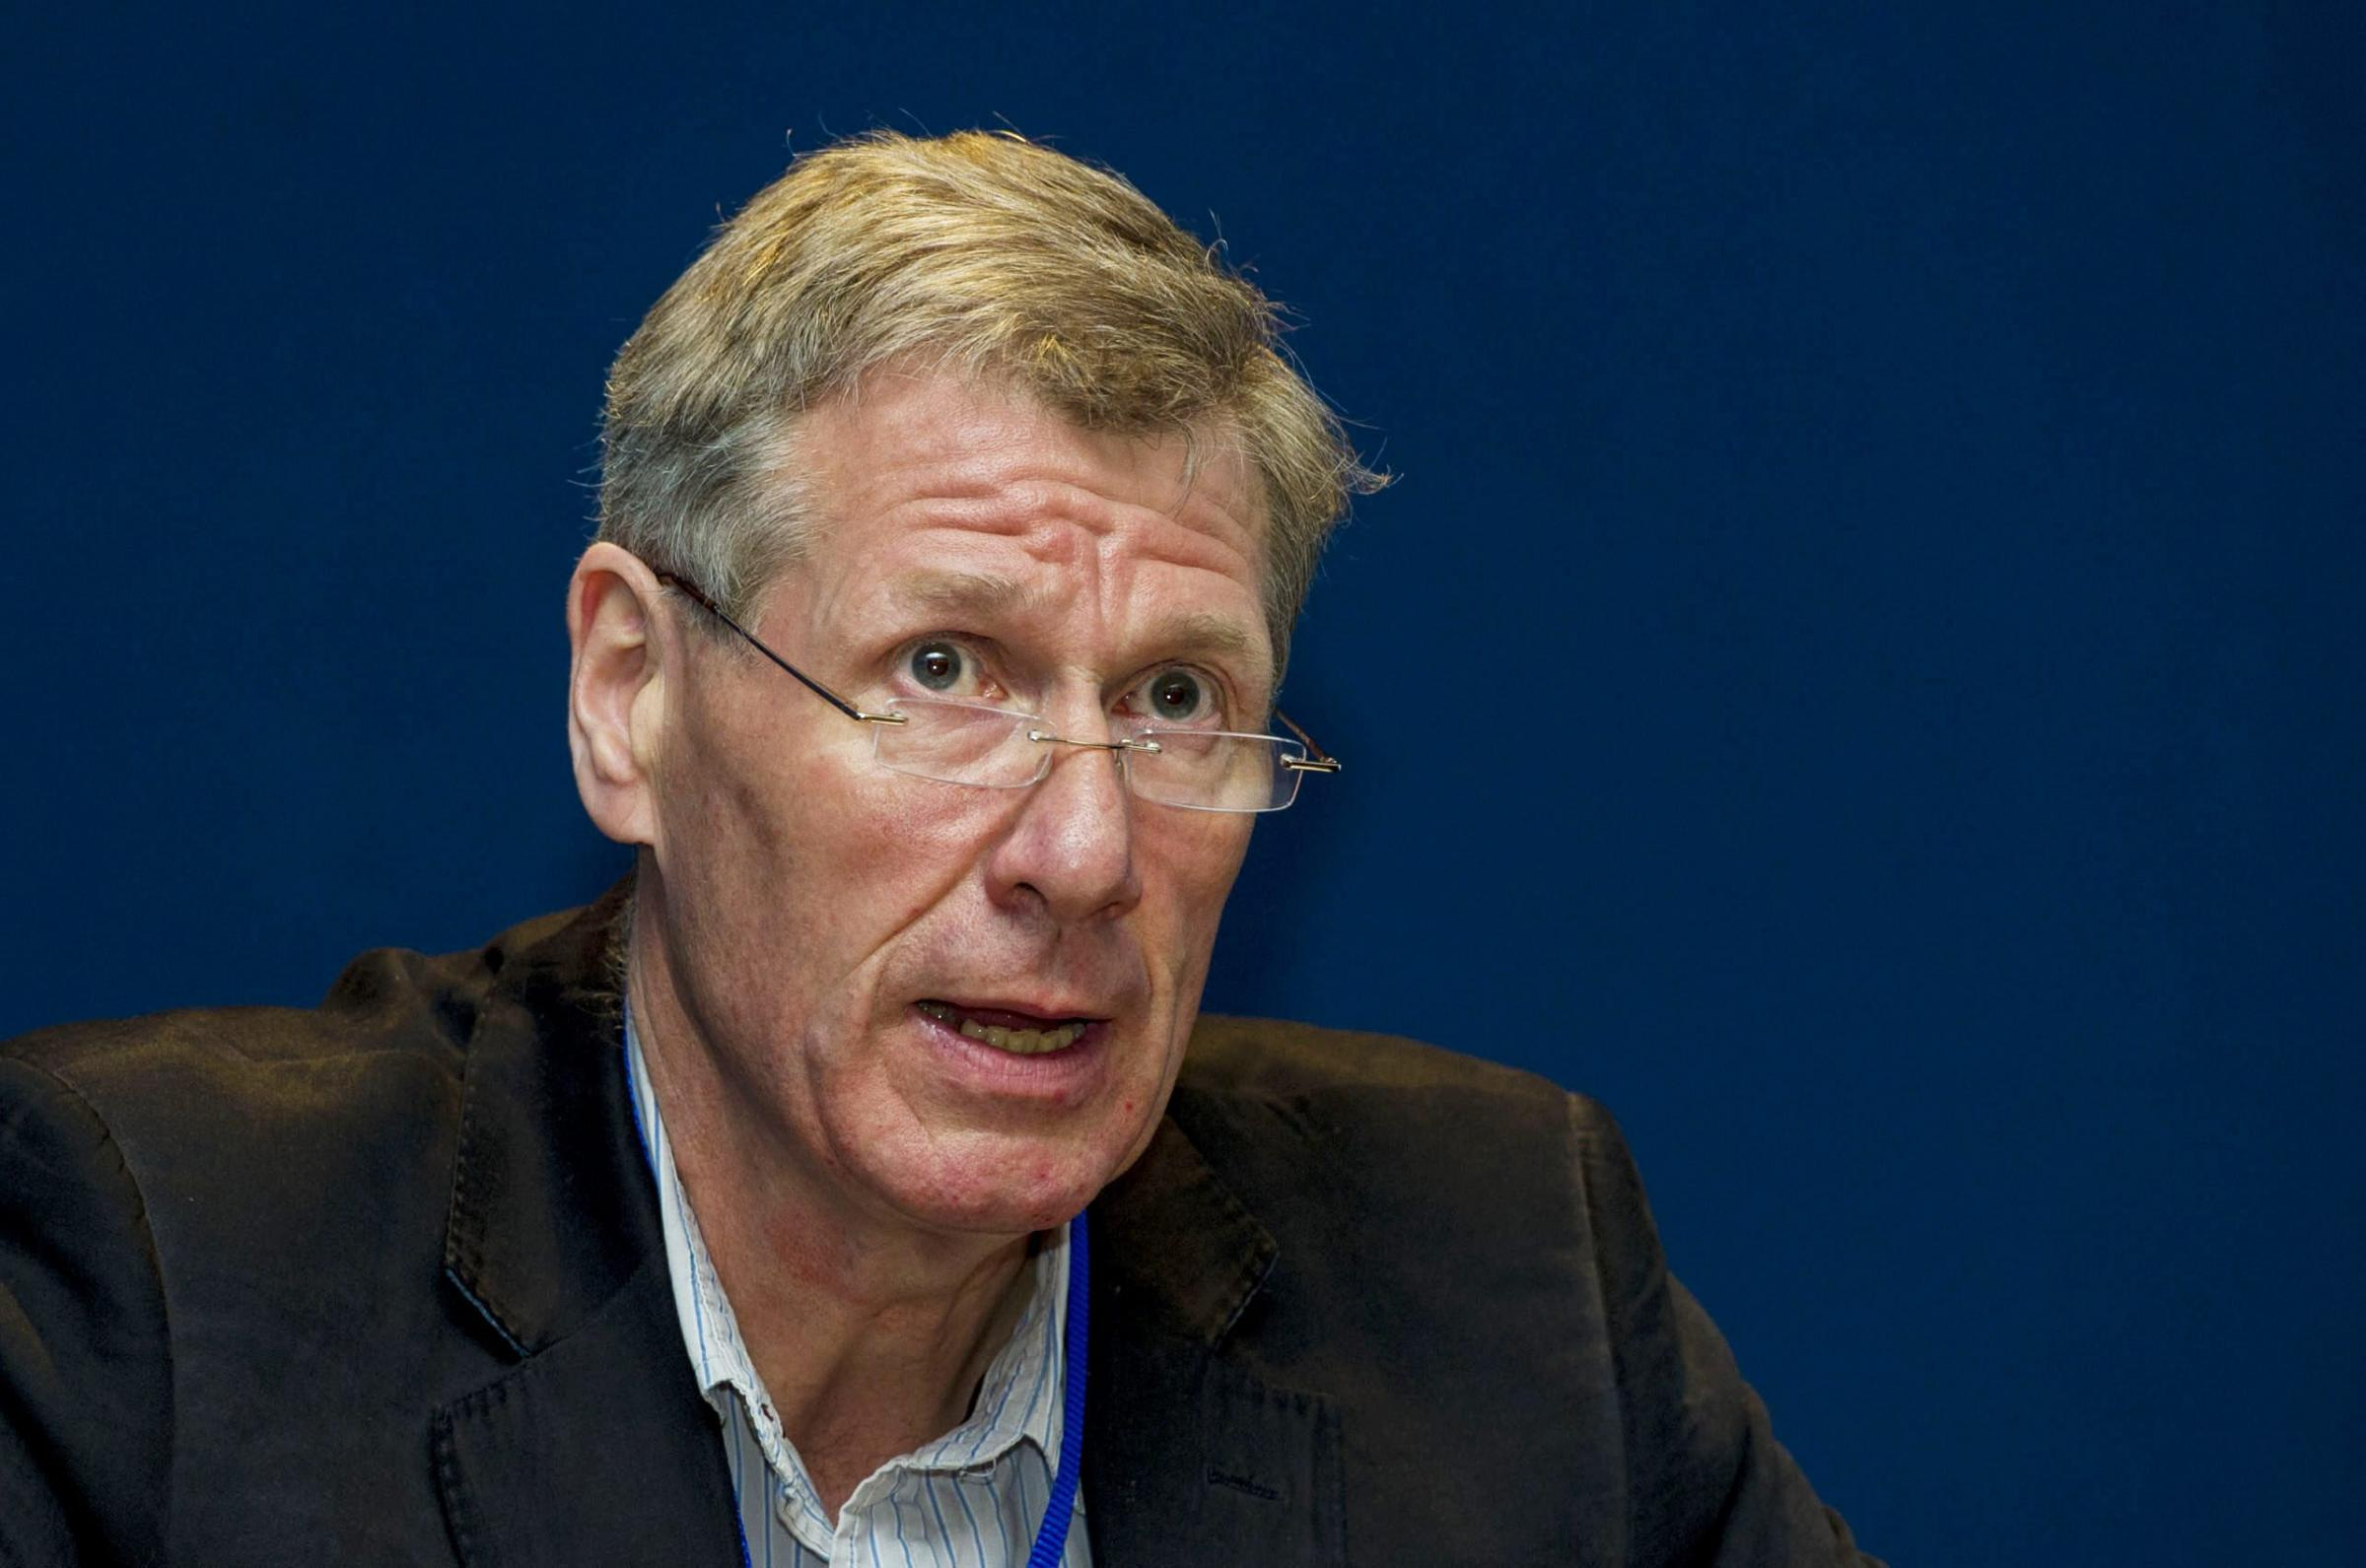 Kenny MacAskill SNP's General Election candidate for East Lothian